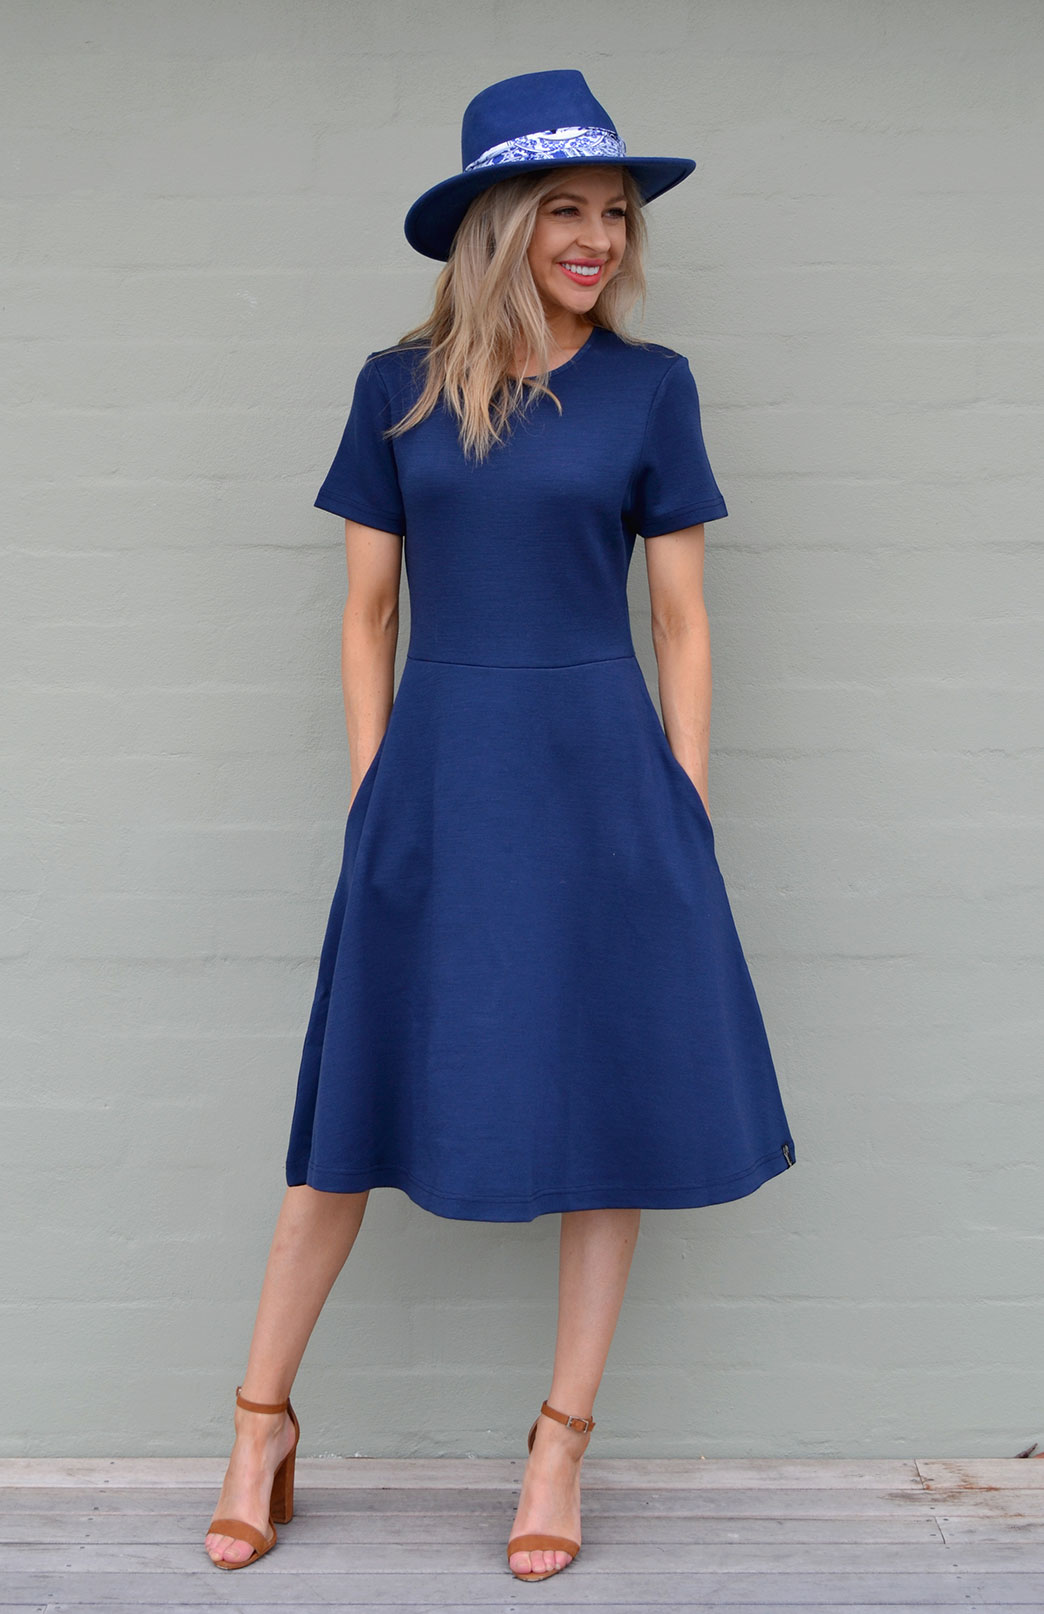 Zoe Dress - Women's Indigo Heavyweight Wool Short Sleeved Dress - Smitten Merino Tasmania Australia